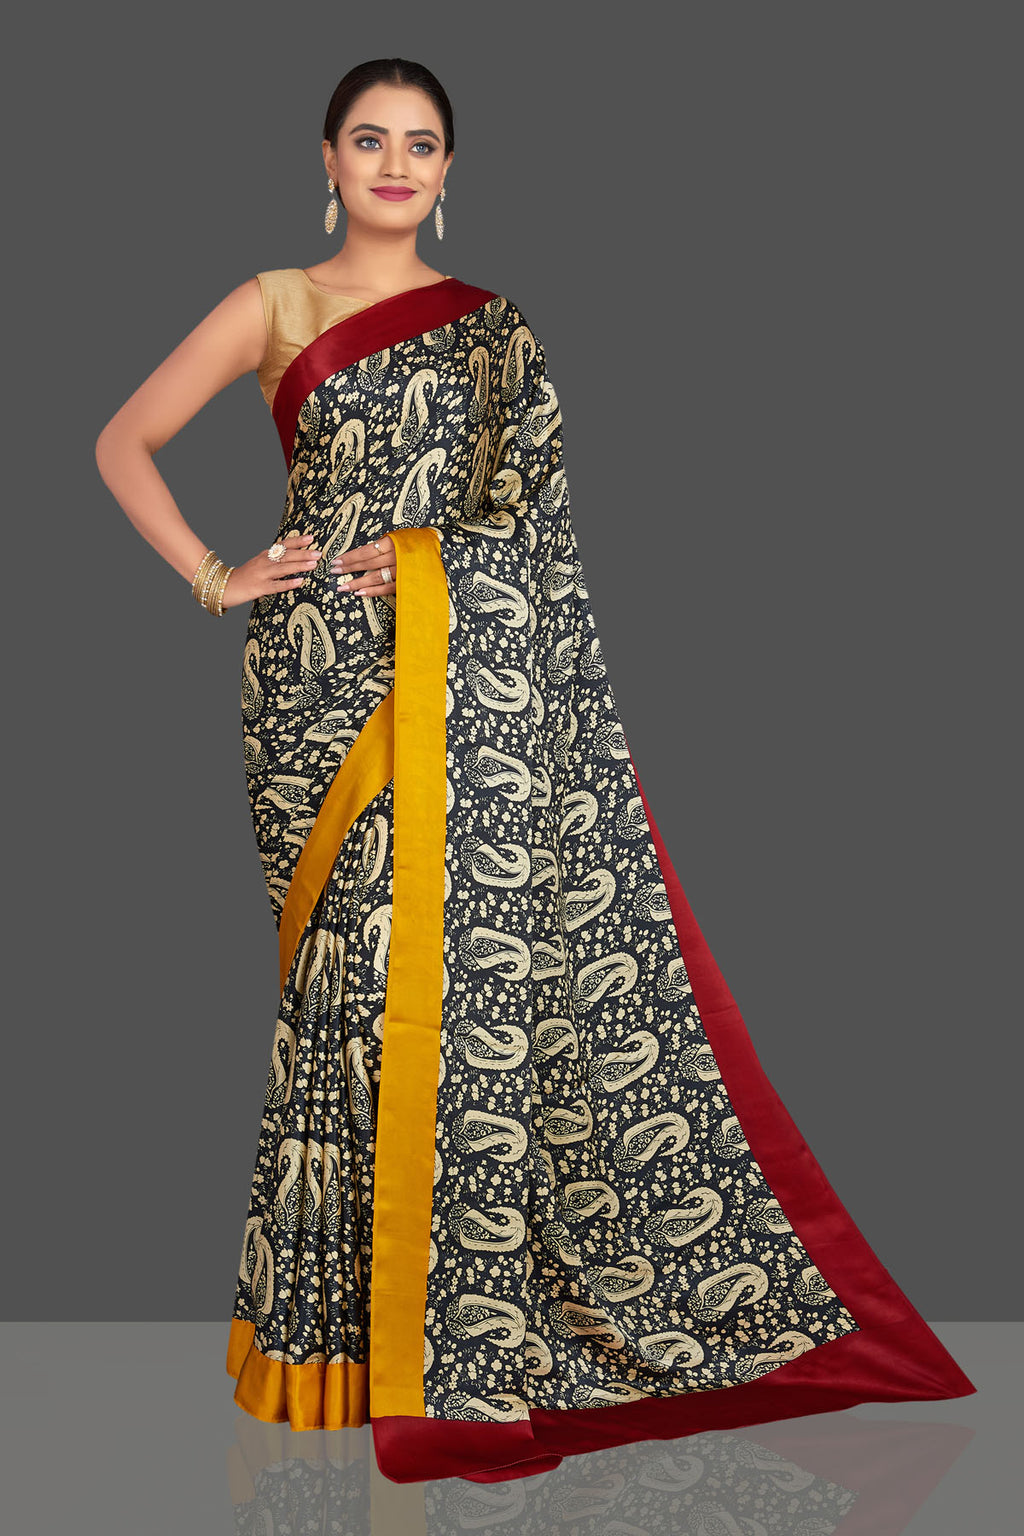 Buy stunning black printed crepe saree online in USA with yellow and red border. Shop designer sarees, printed sarees, embroidered sarees, crepe sarees in USA from Pure Elegance Indian fashion store in USA.-full view